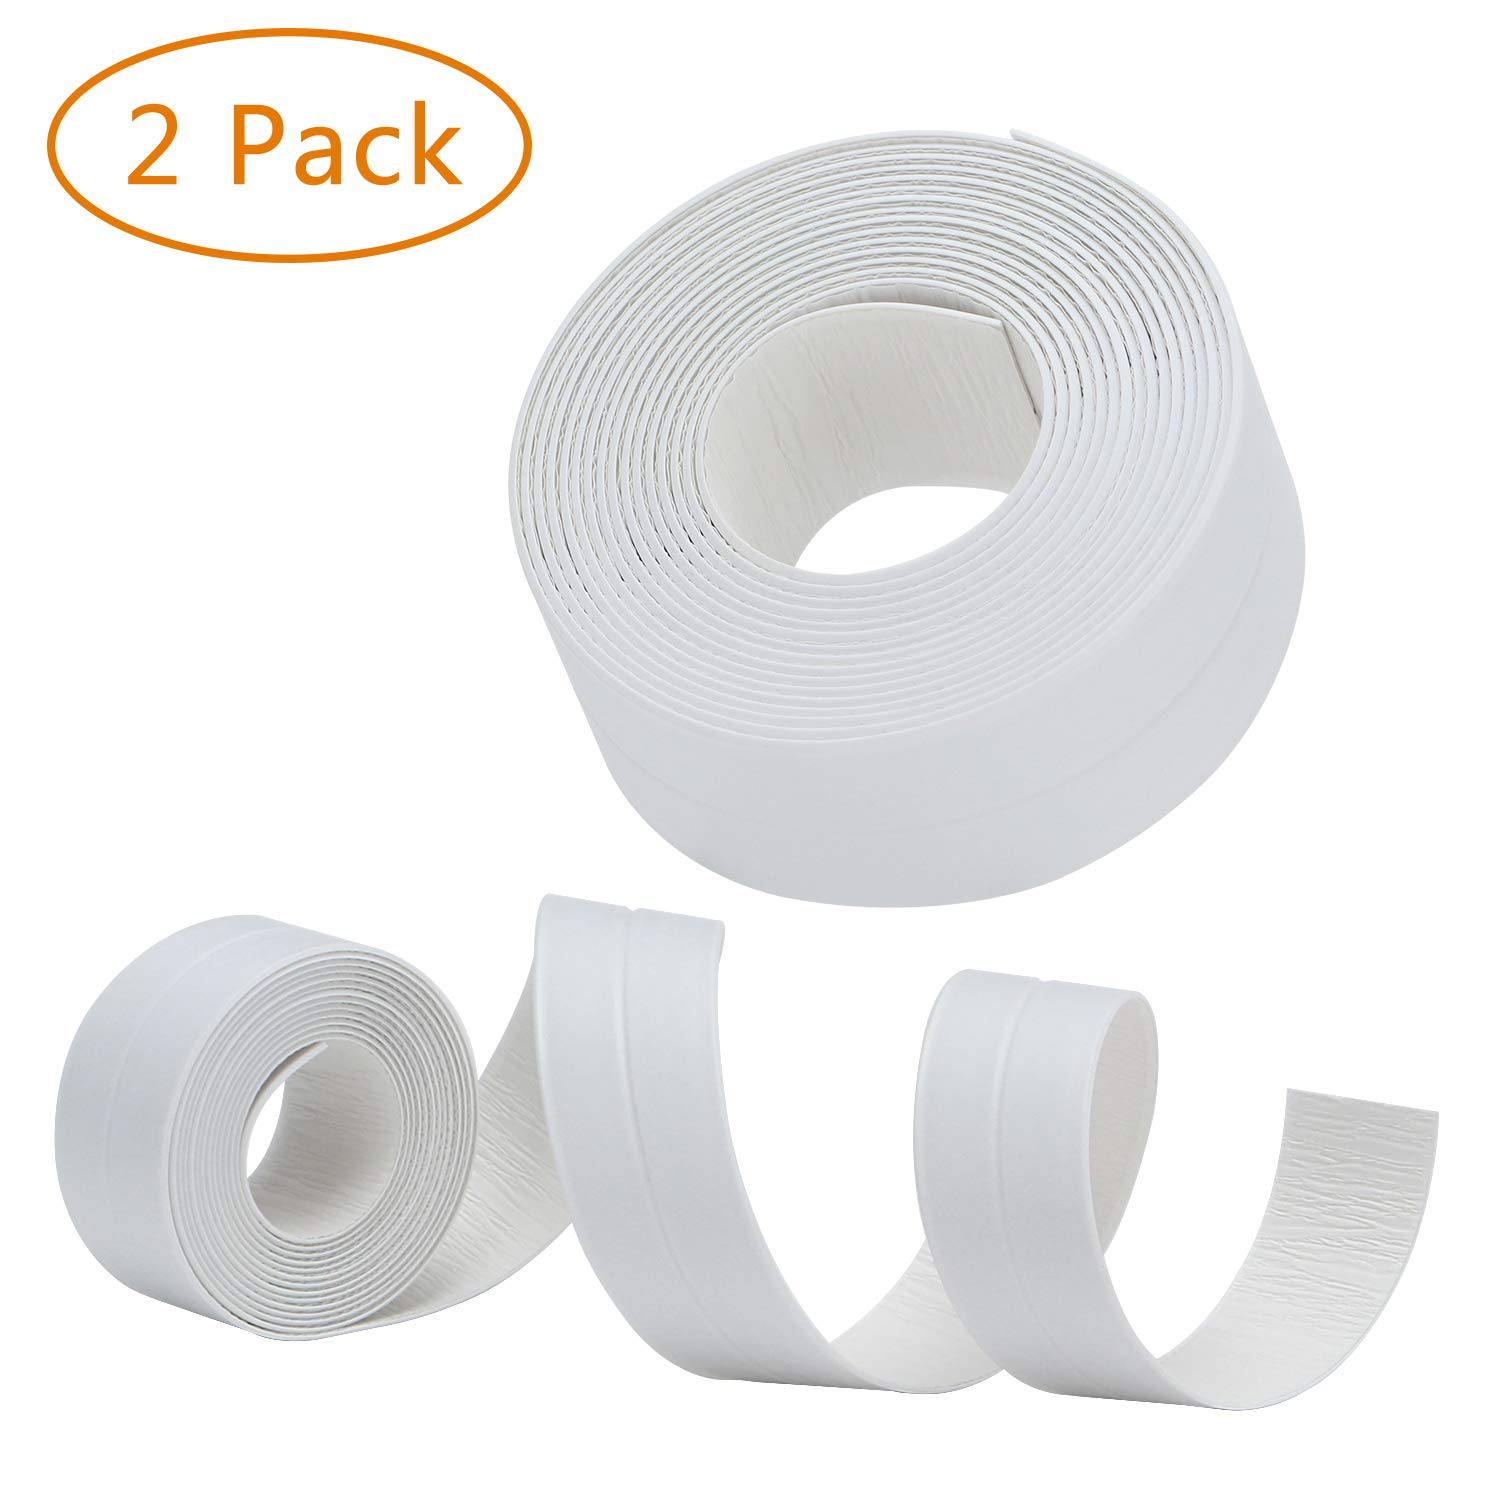 RONRI PVC Caulk Strip Waterproof Bathtub Strong Self Adhesive Stick Caulking and Flexible Peel Tape Sealing Tape Sealer Best for Fixture Wall Bathtub Corner Kitchen Bathroom Shower Sink countertop 2